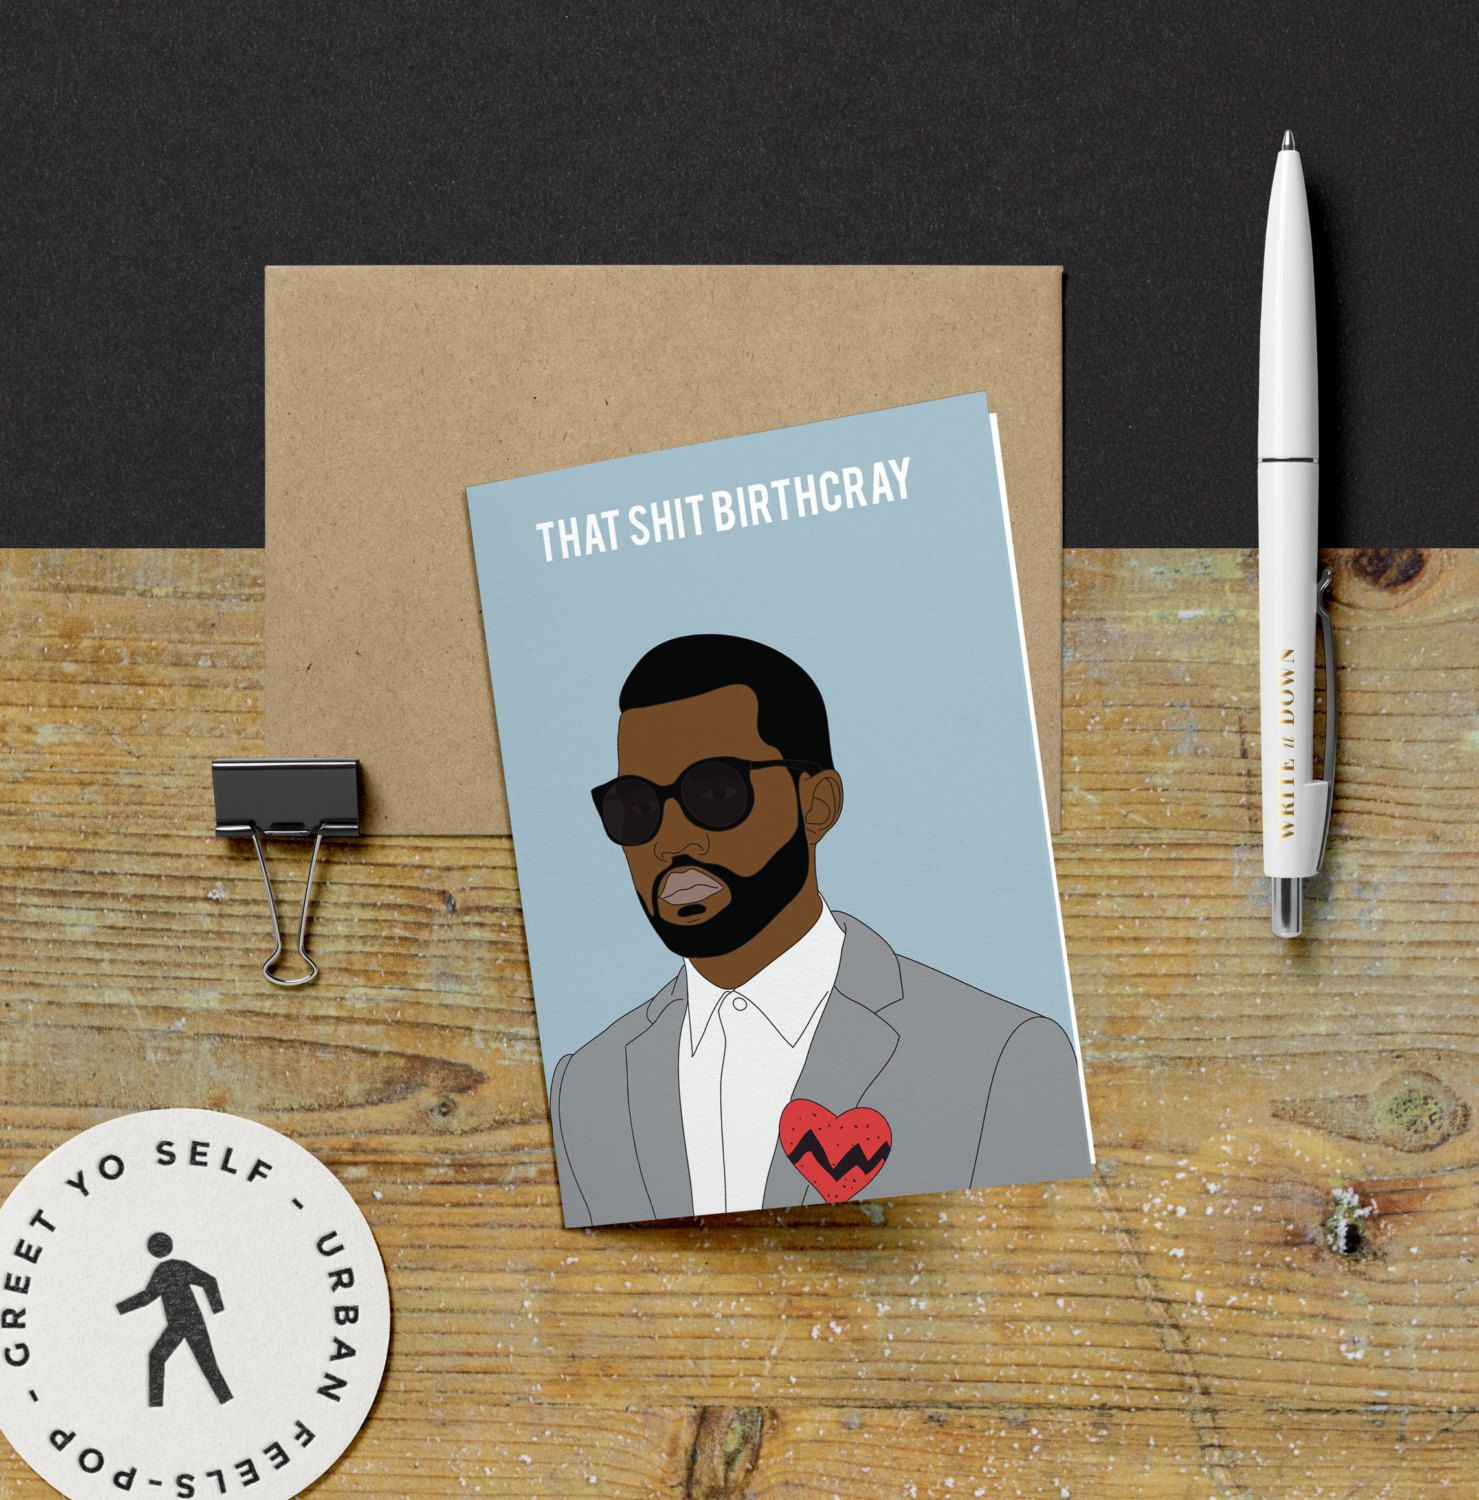 Kanye west that shit birthcray birthday card yeezy kanye kanye west that shit birthcray birthday card yeezy kanye birthday card funny card greeting card celebrity pop hip hop culture card by greetyoself on m4hsunfo